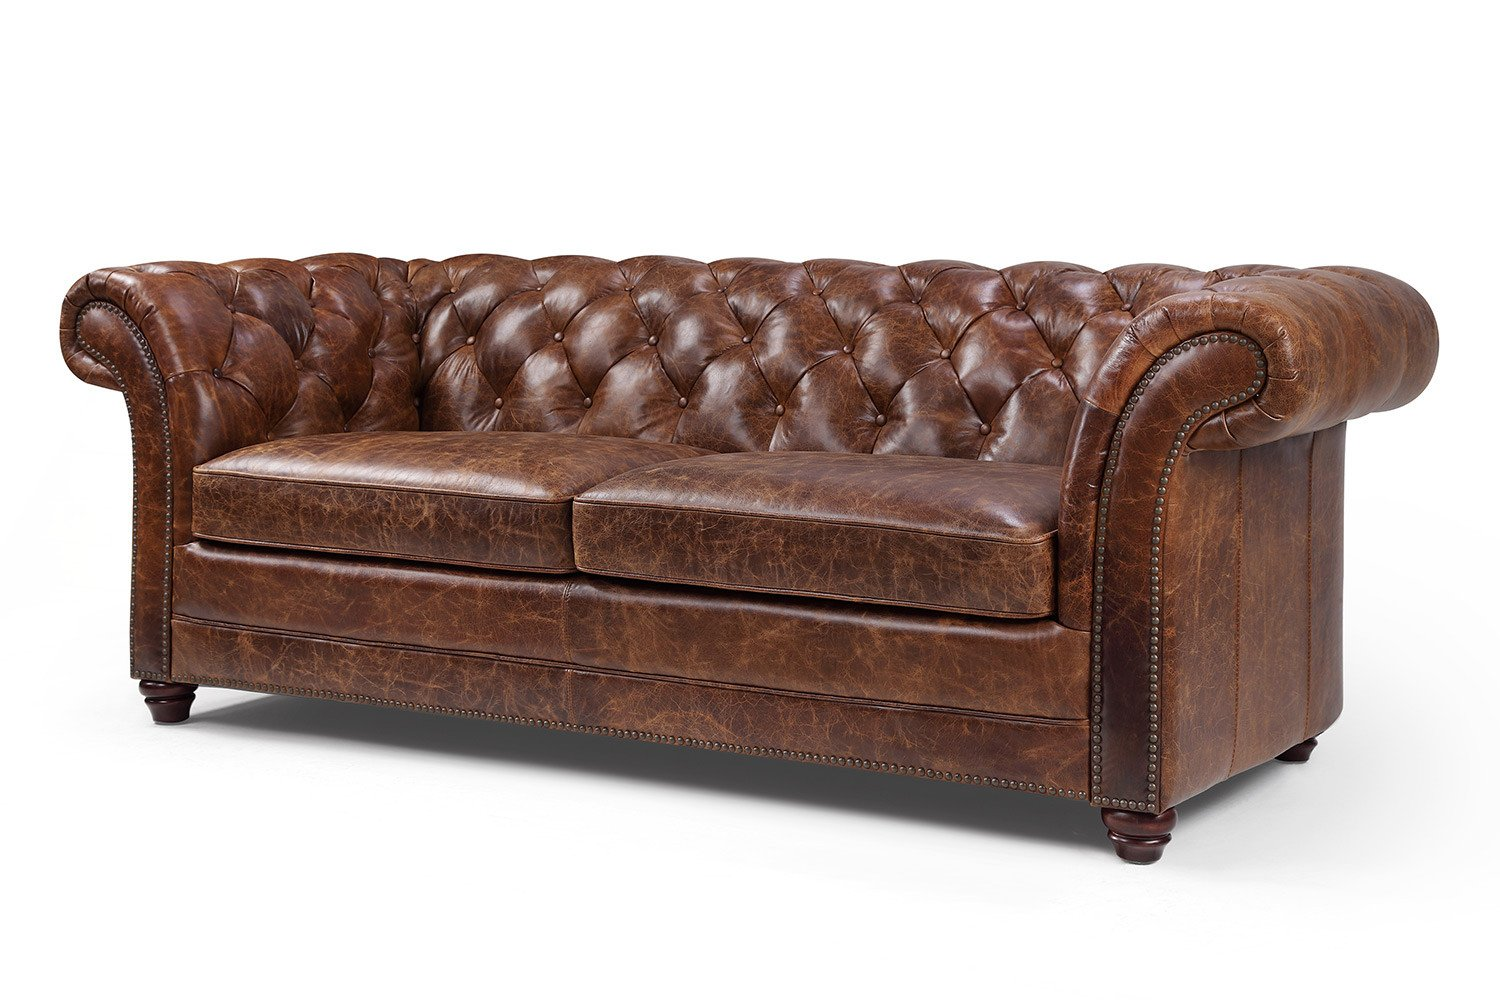 Amazon.com: Westminster Chesterfield Leather Sofa By Rose U0026 Moore: Kitchen  U0026 Dining